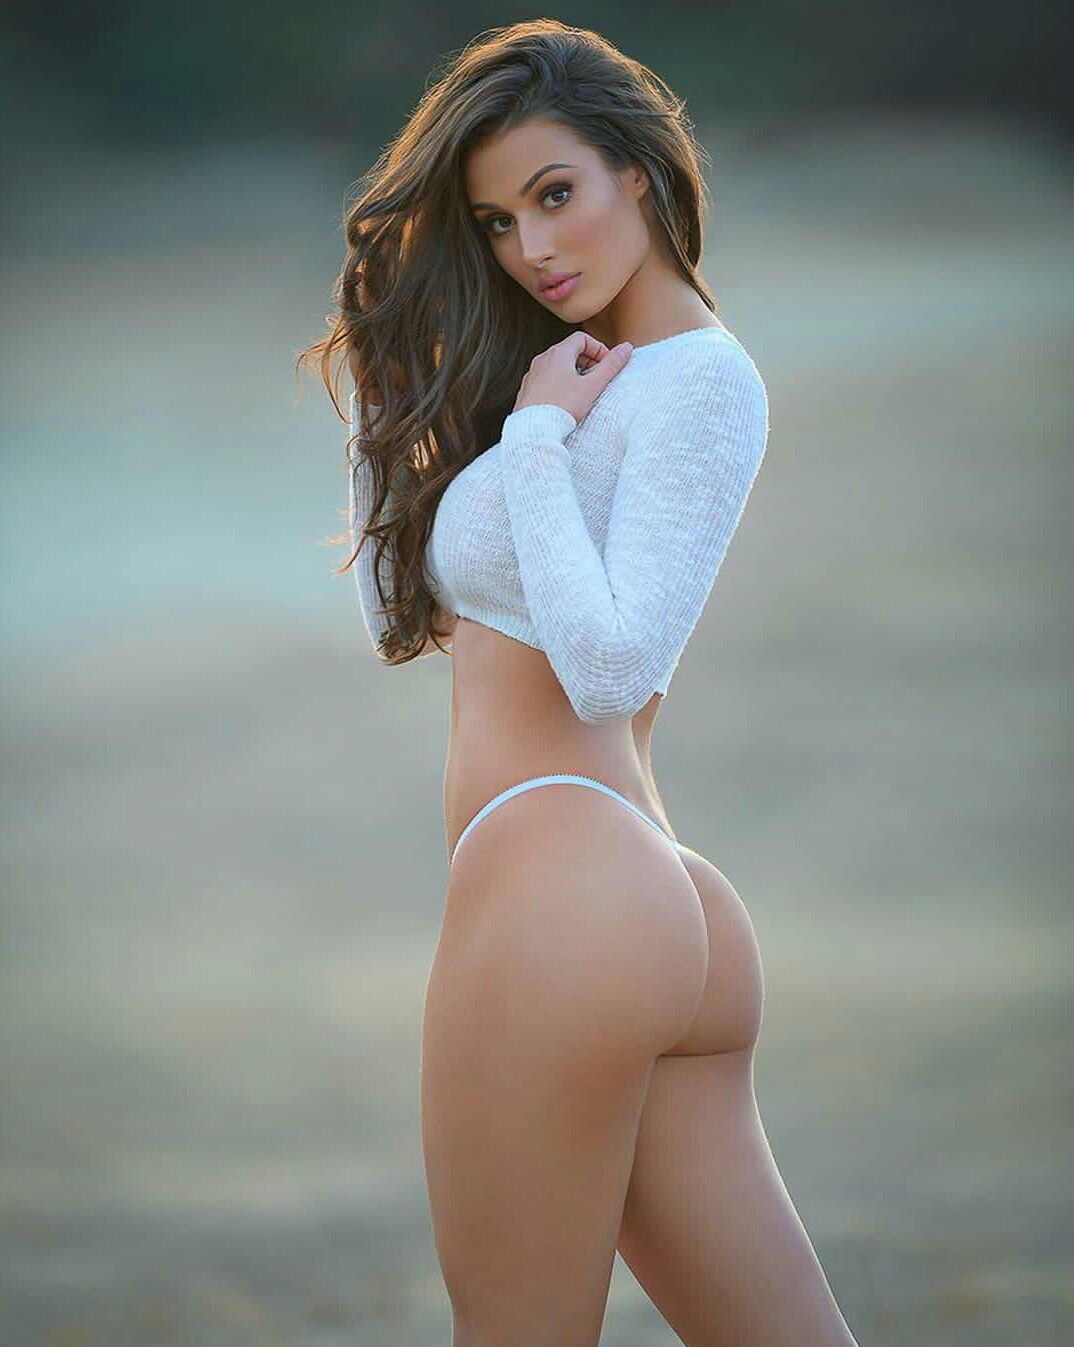 Young Bianca Kmiec naked (58 photos), Topless, Bikini, Instagram, cleavage 2015